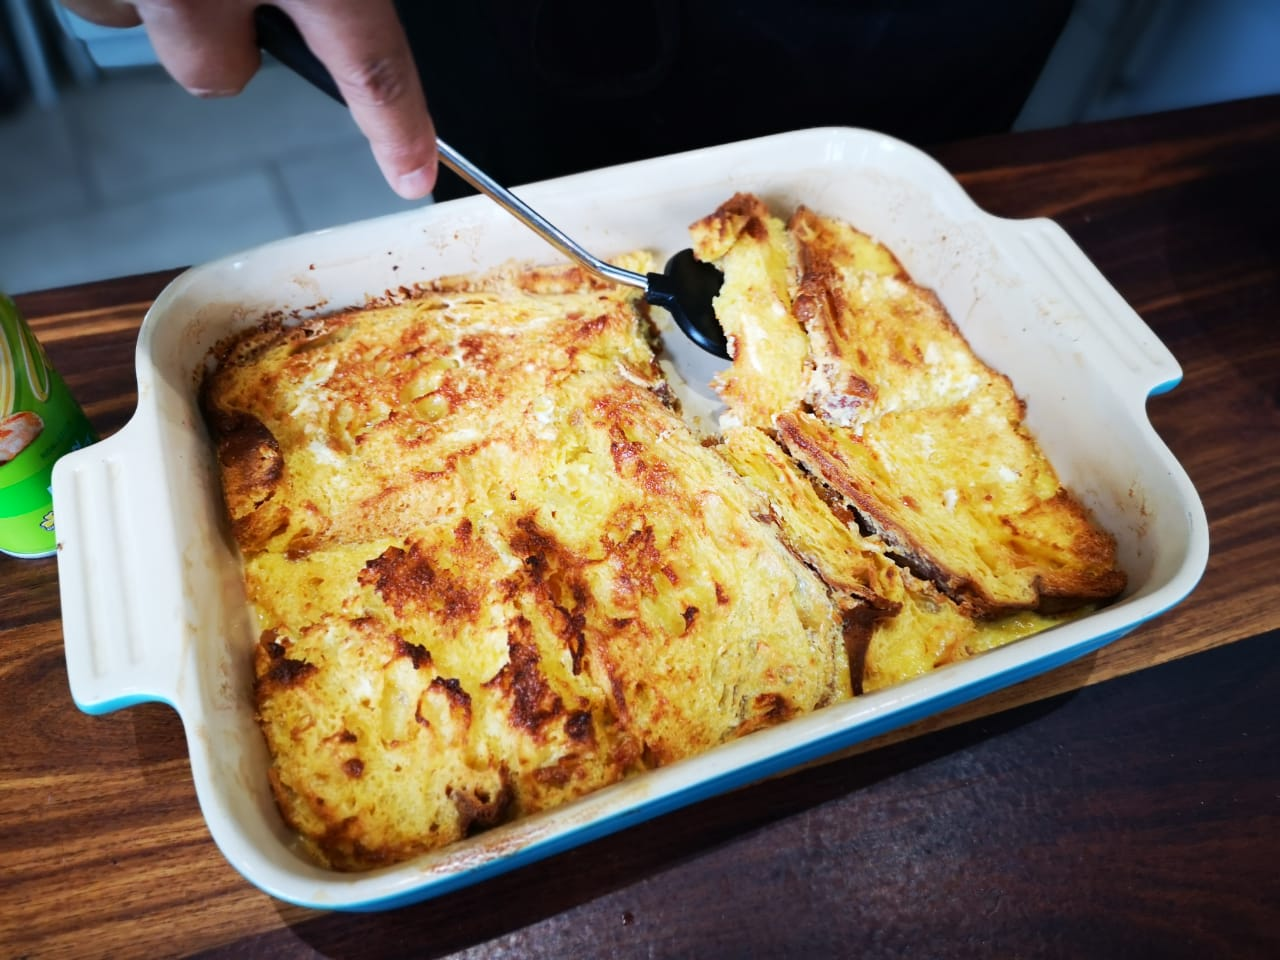 Fortunato Mazzone – Bread and butter pudding